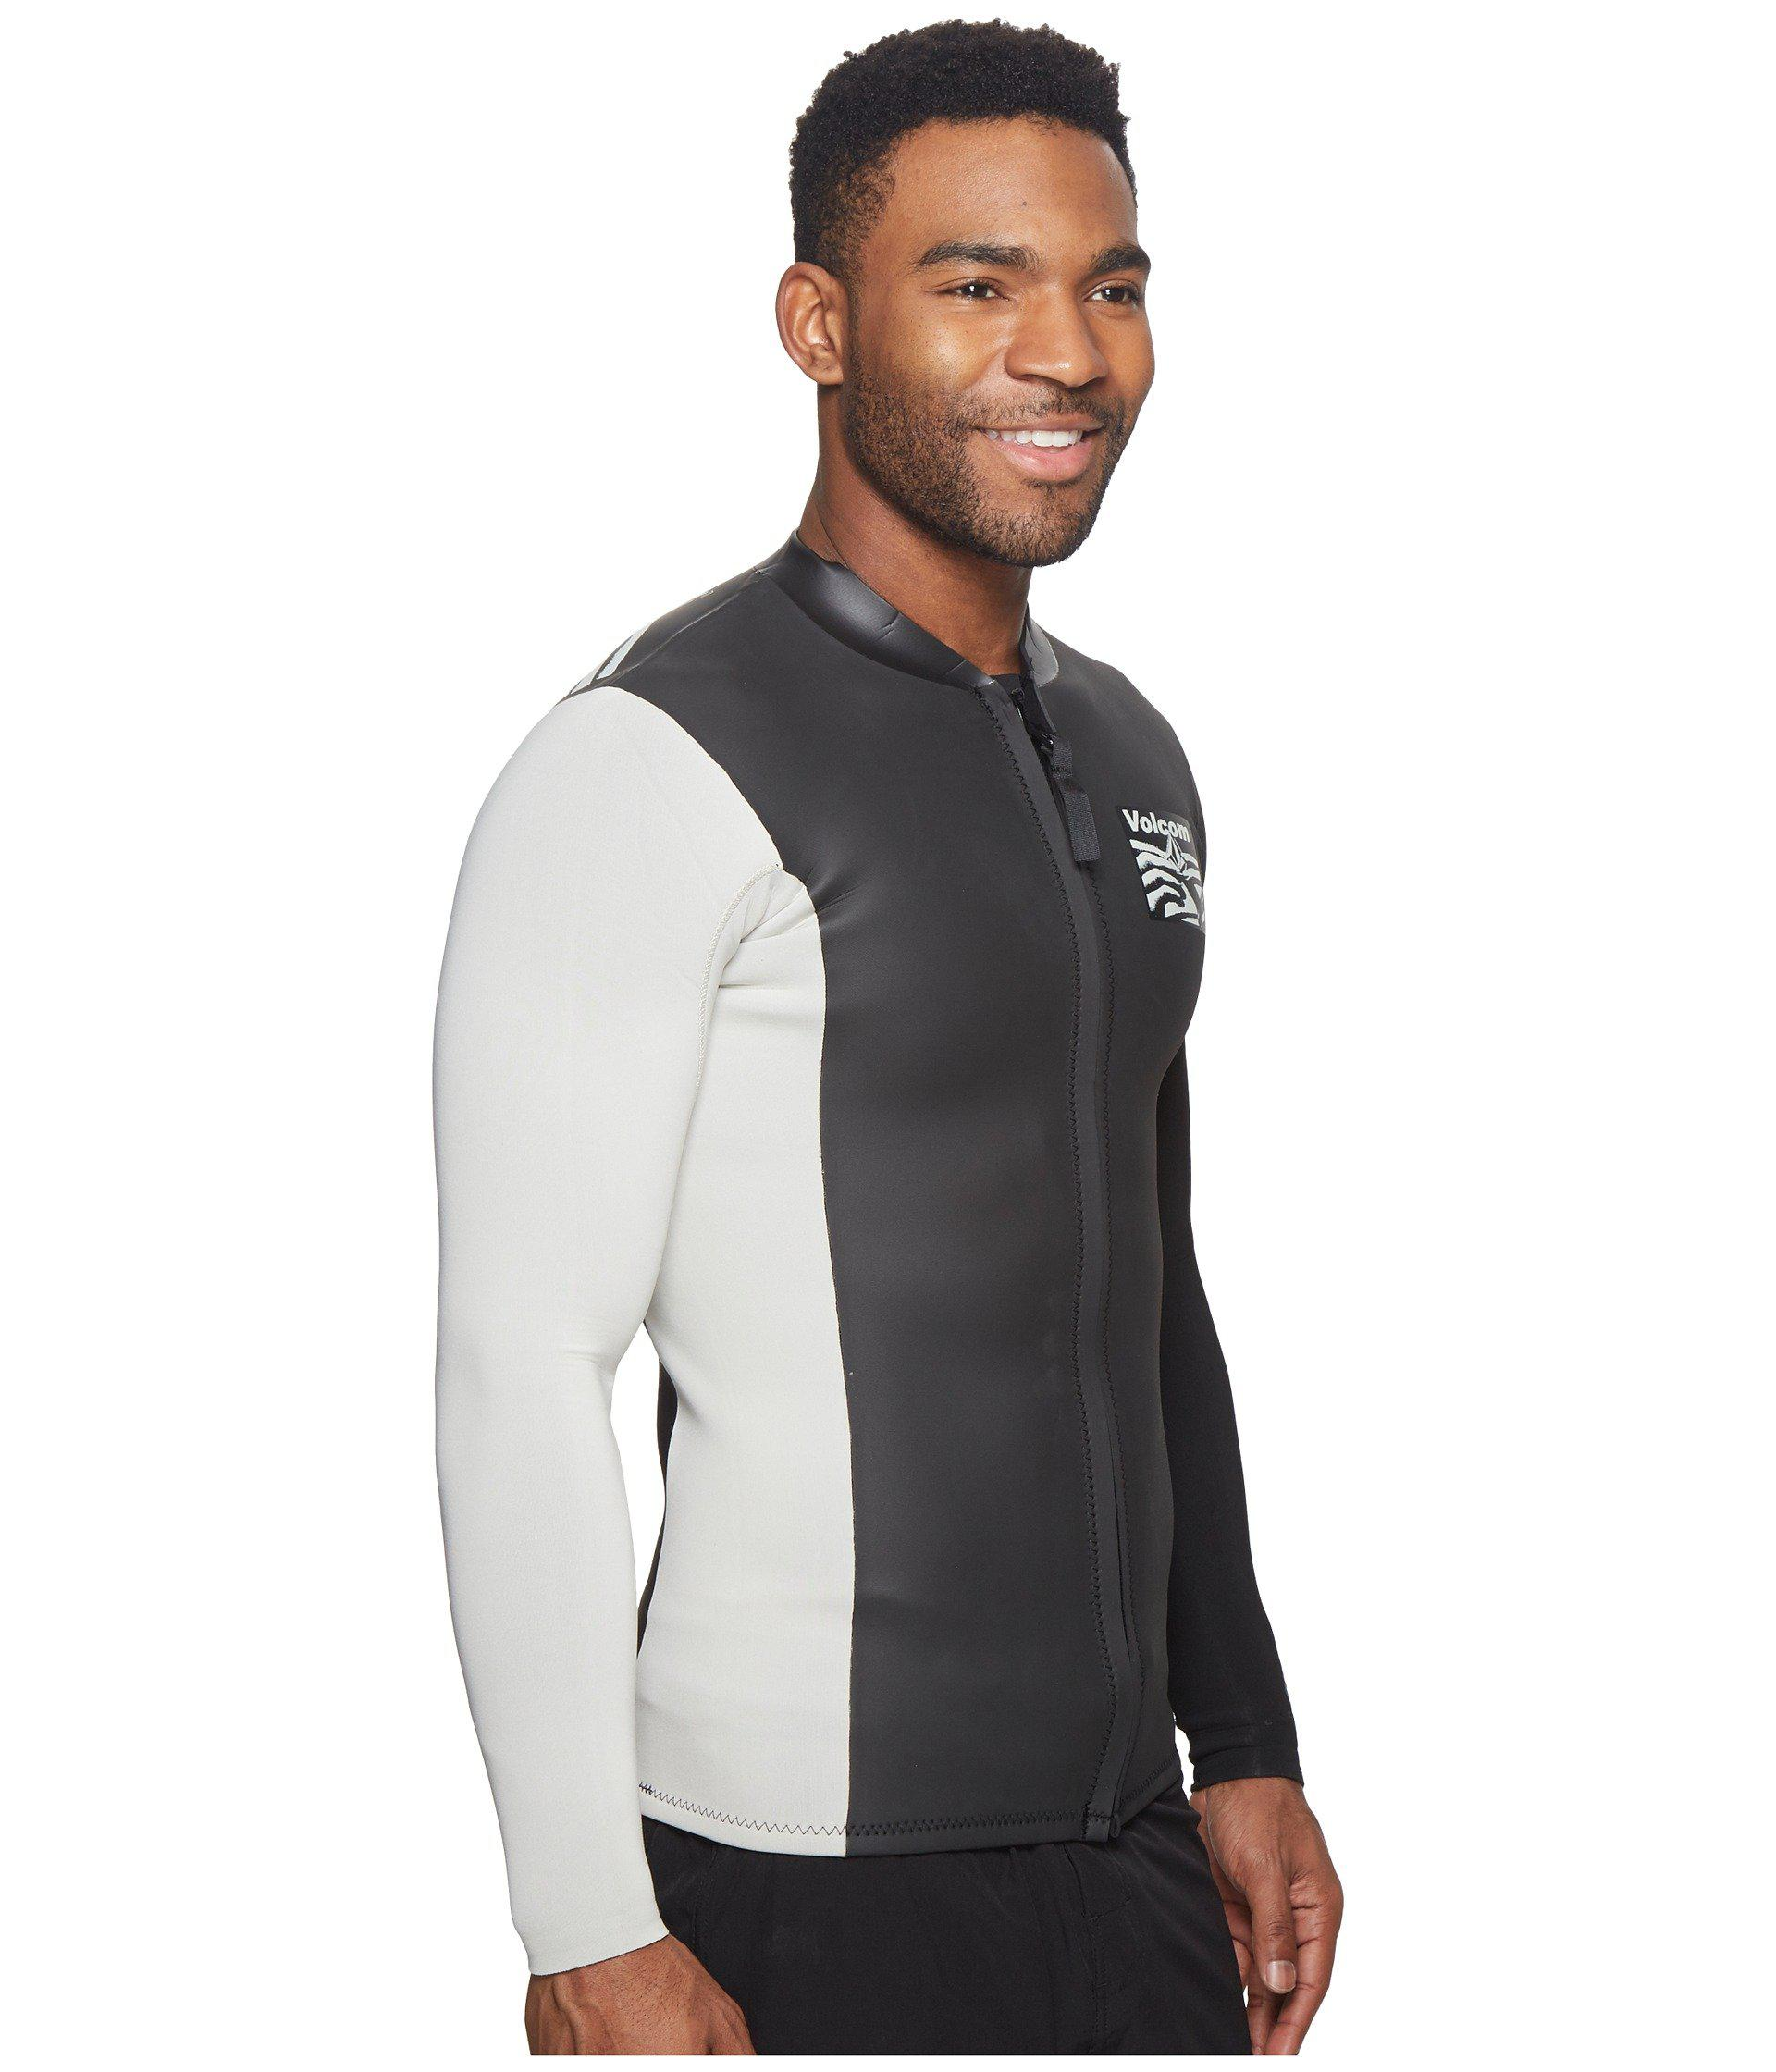 Lyst - Volcom Chesticle Jacket in Black for Men b06946f1fb9